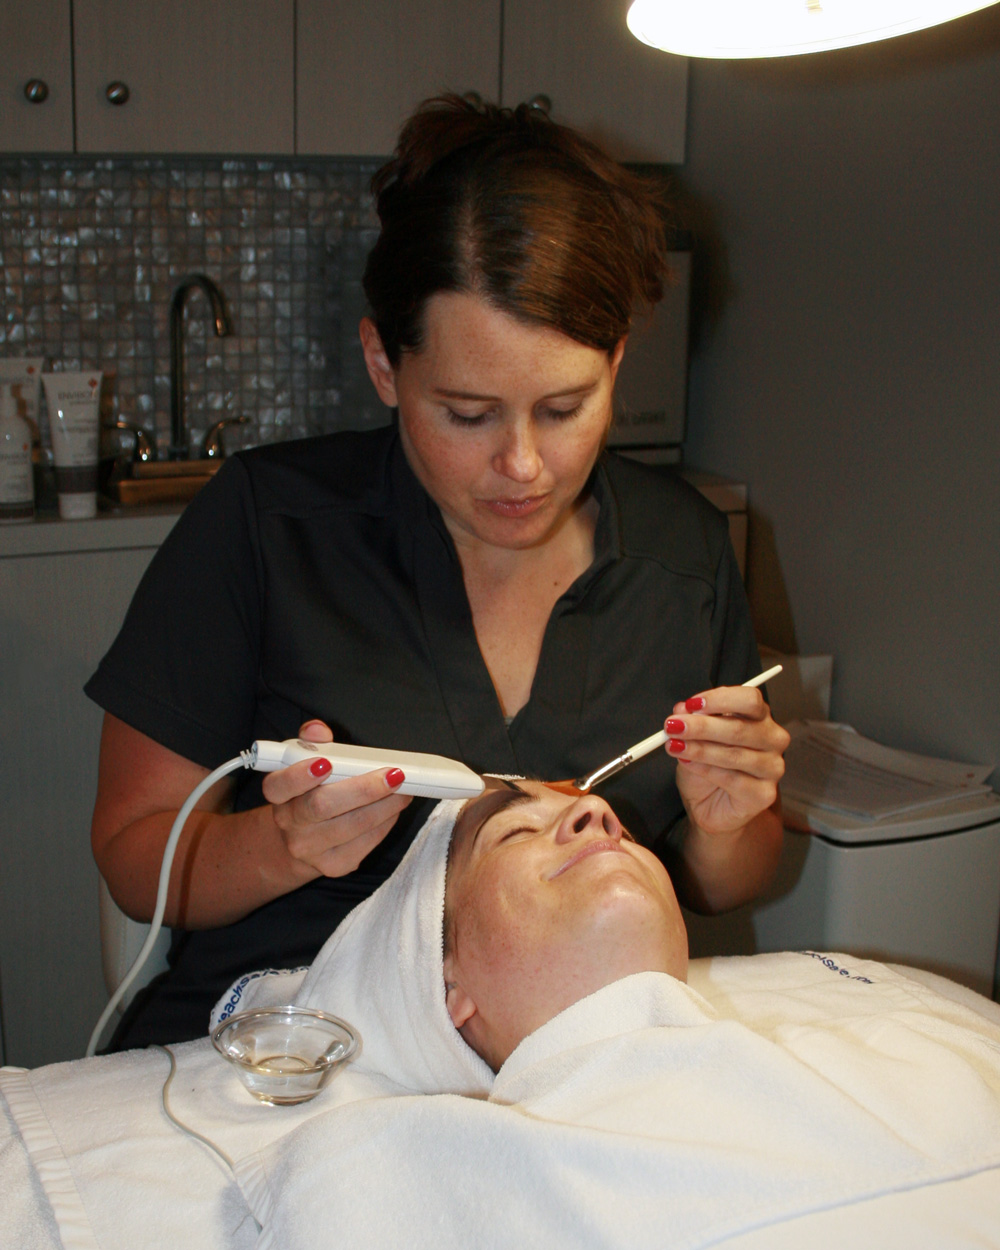 Master Aesthetician Laura using ultrasonic machine on facial client